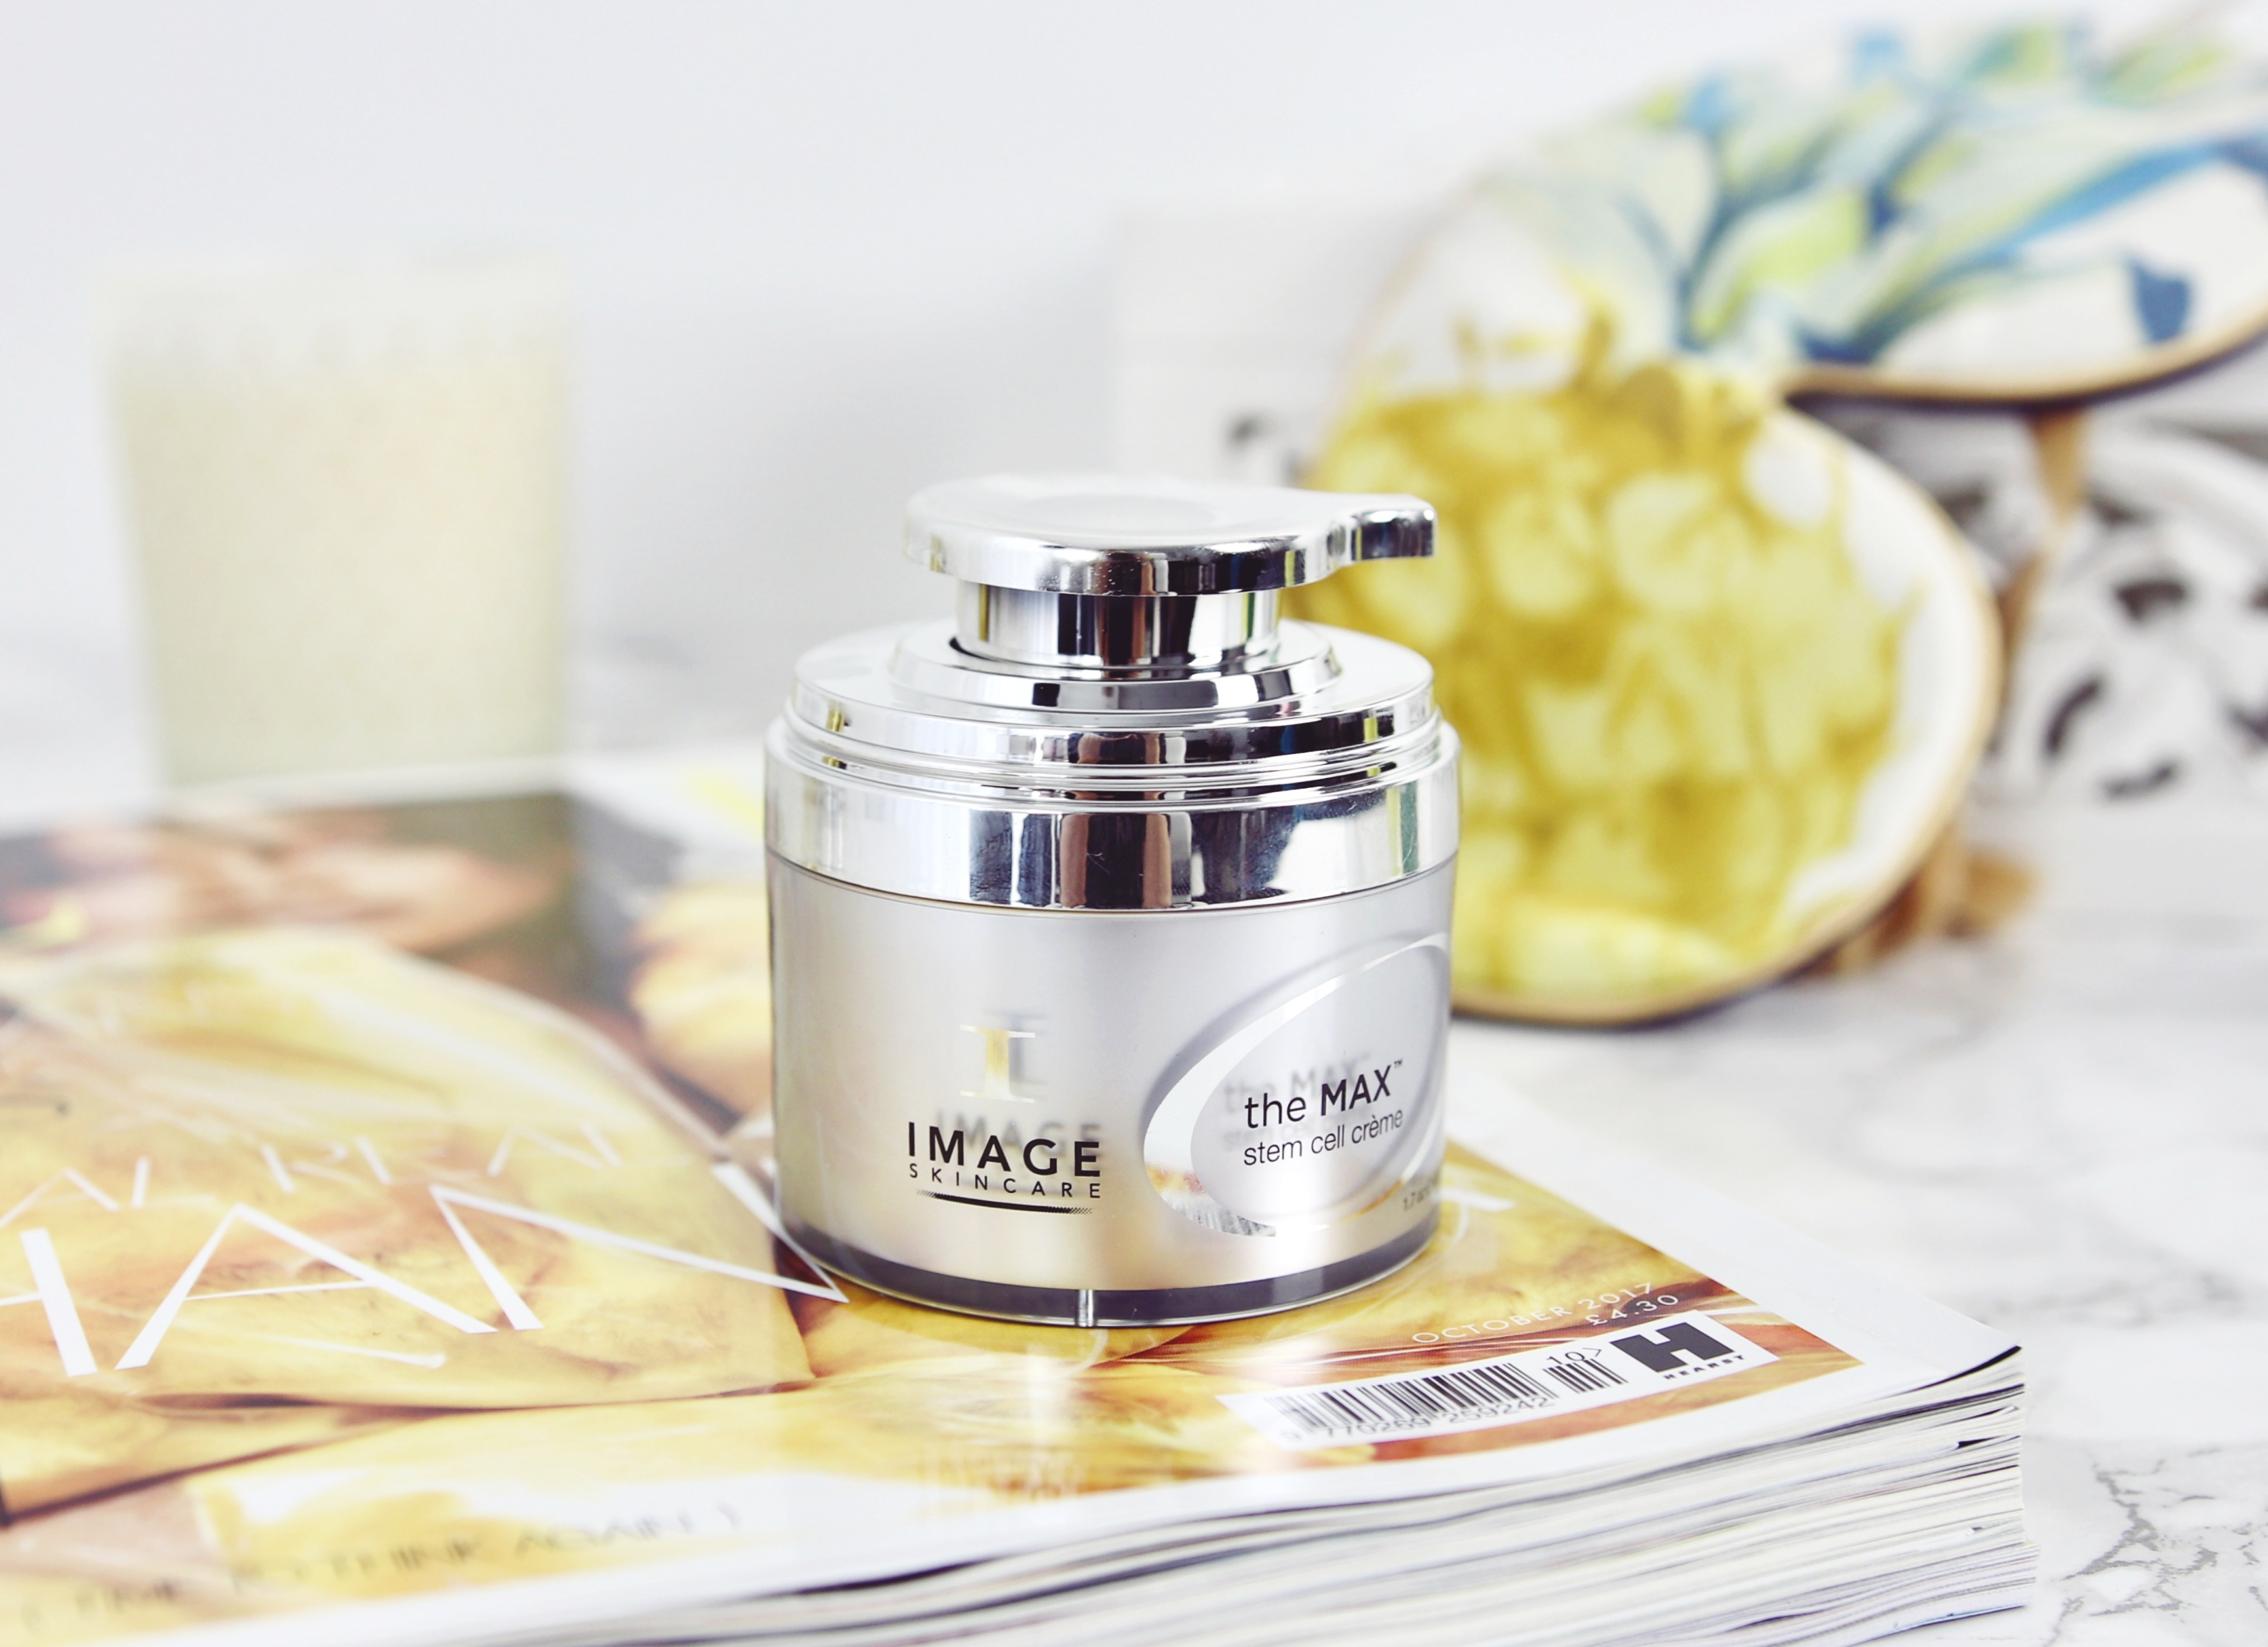 Image Skincare Stem Cell Creme Best Overnight Treatments Skincare UK Beauty Blogger